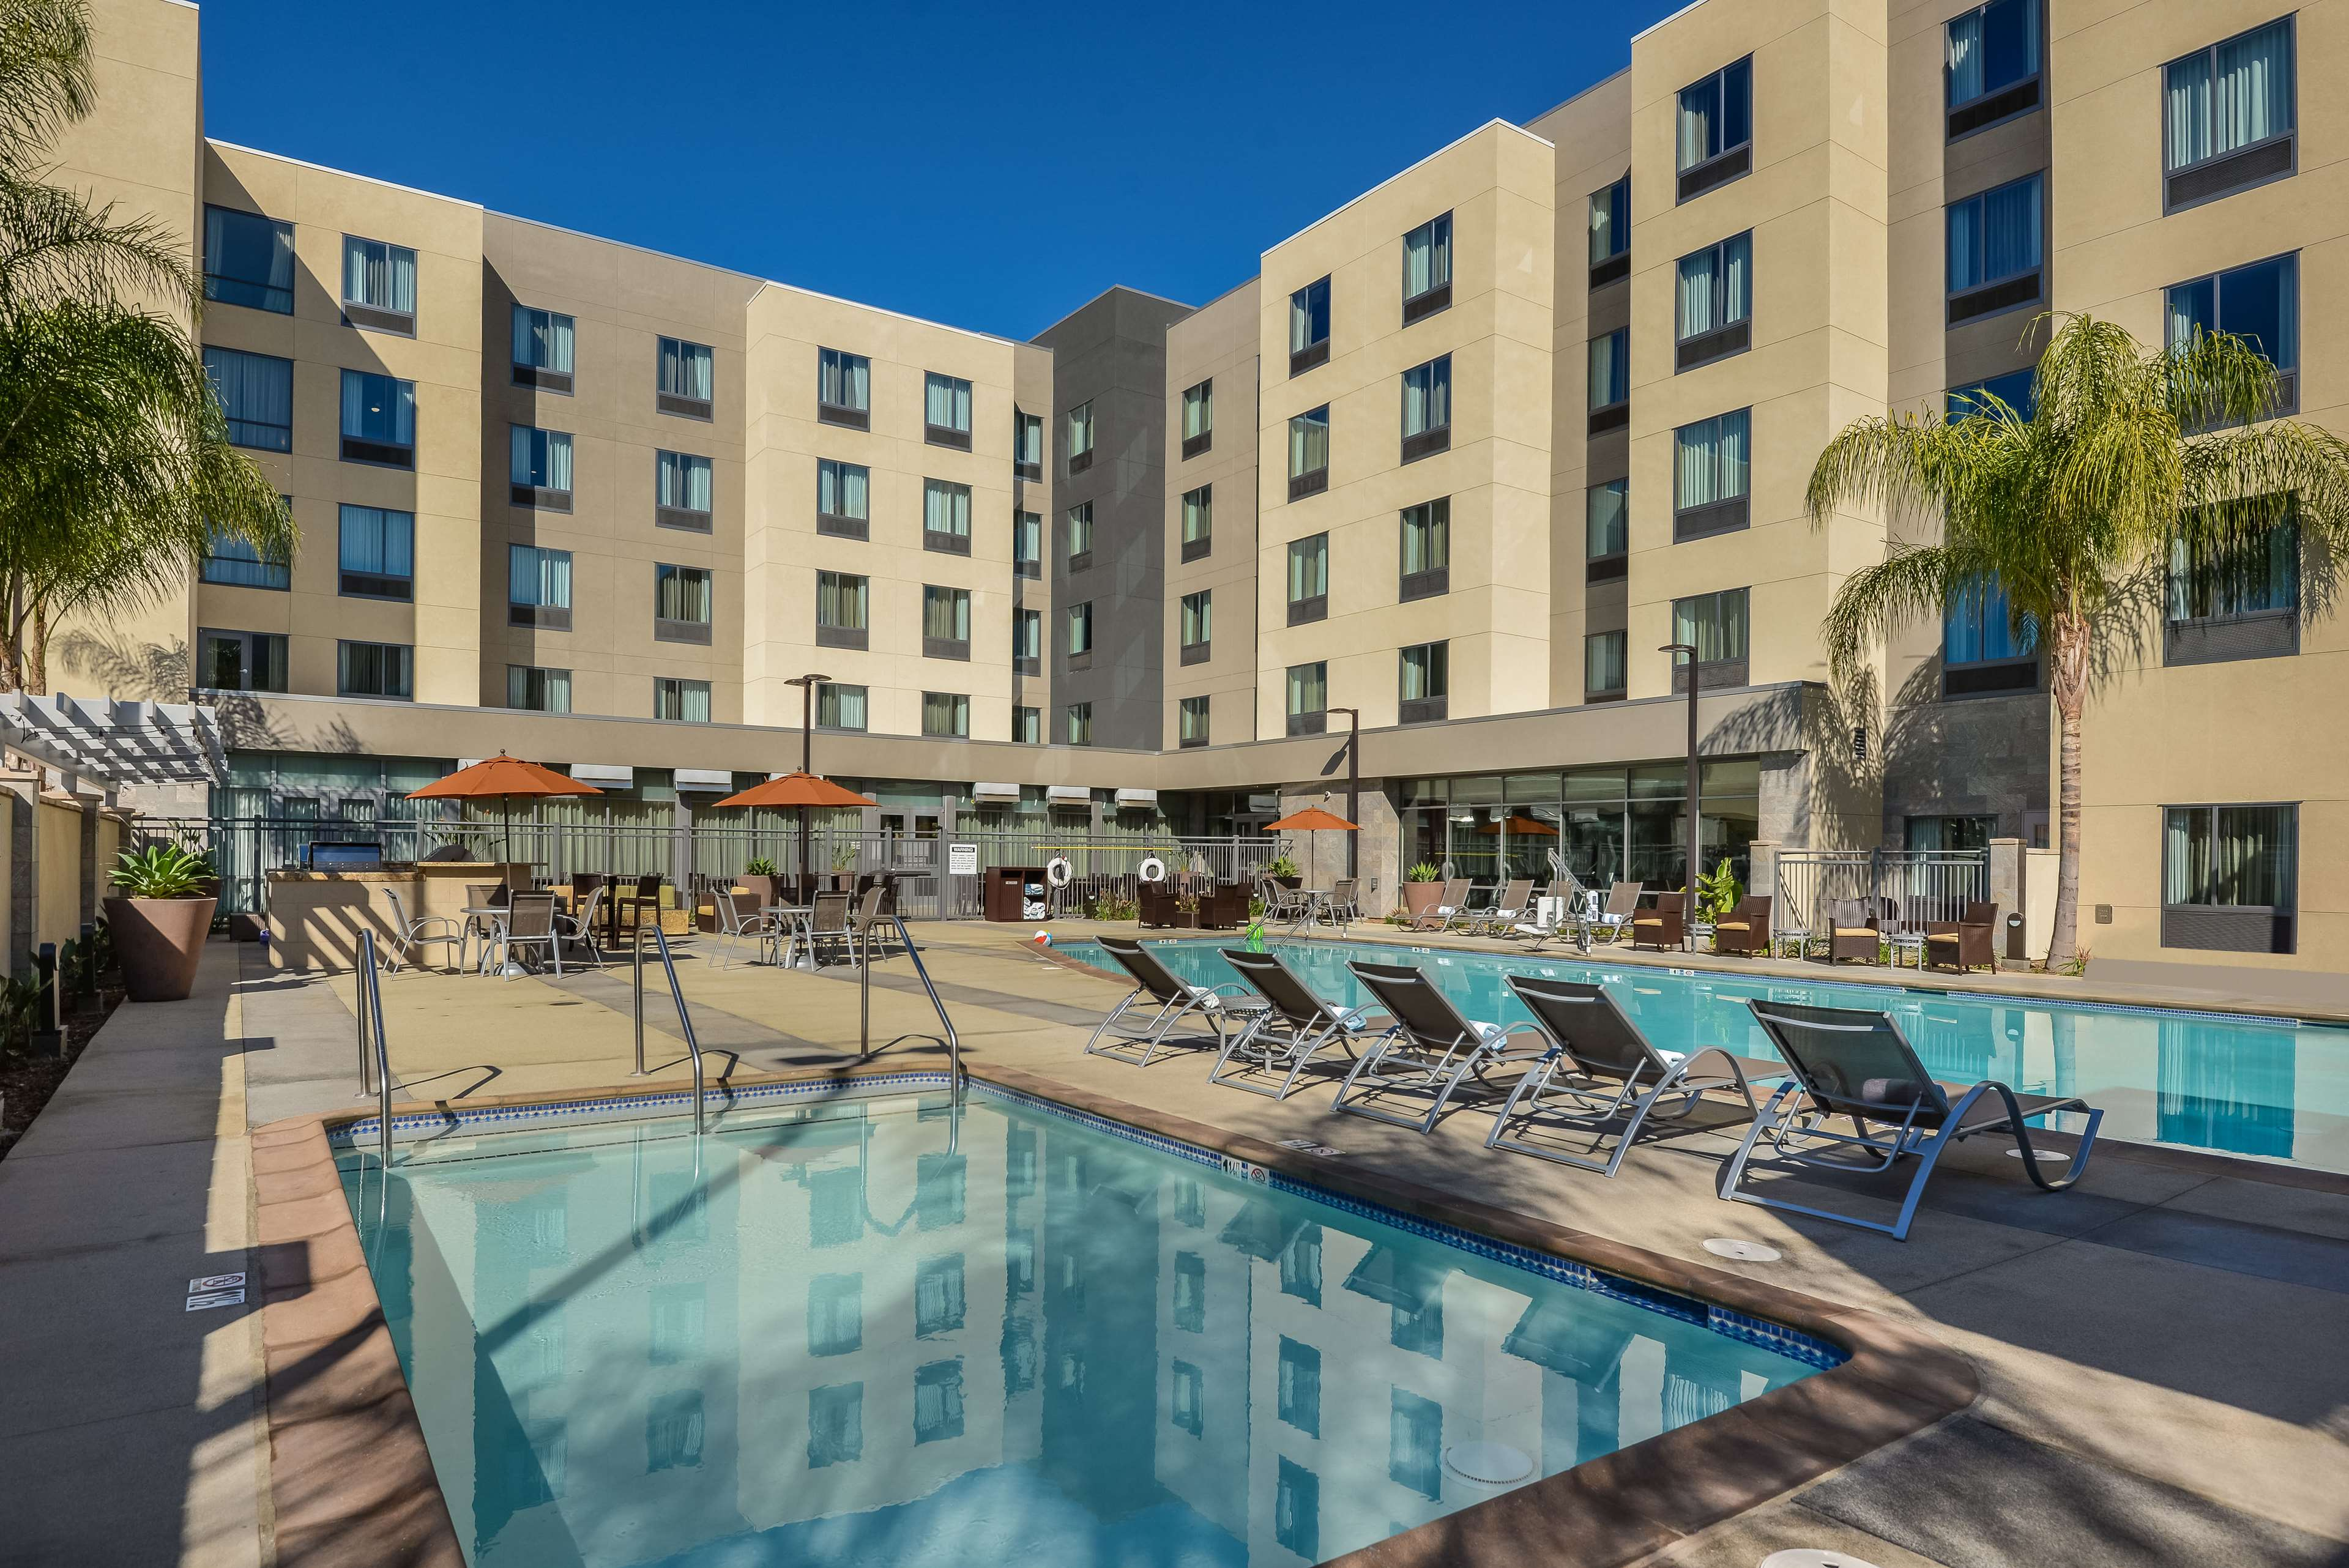 Homewood Suites by Hilton Anaheim Resort - Convention Center image 5